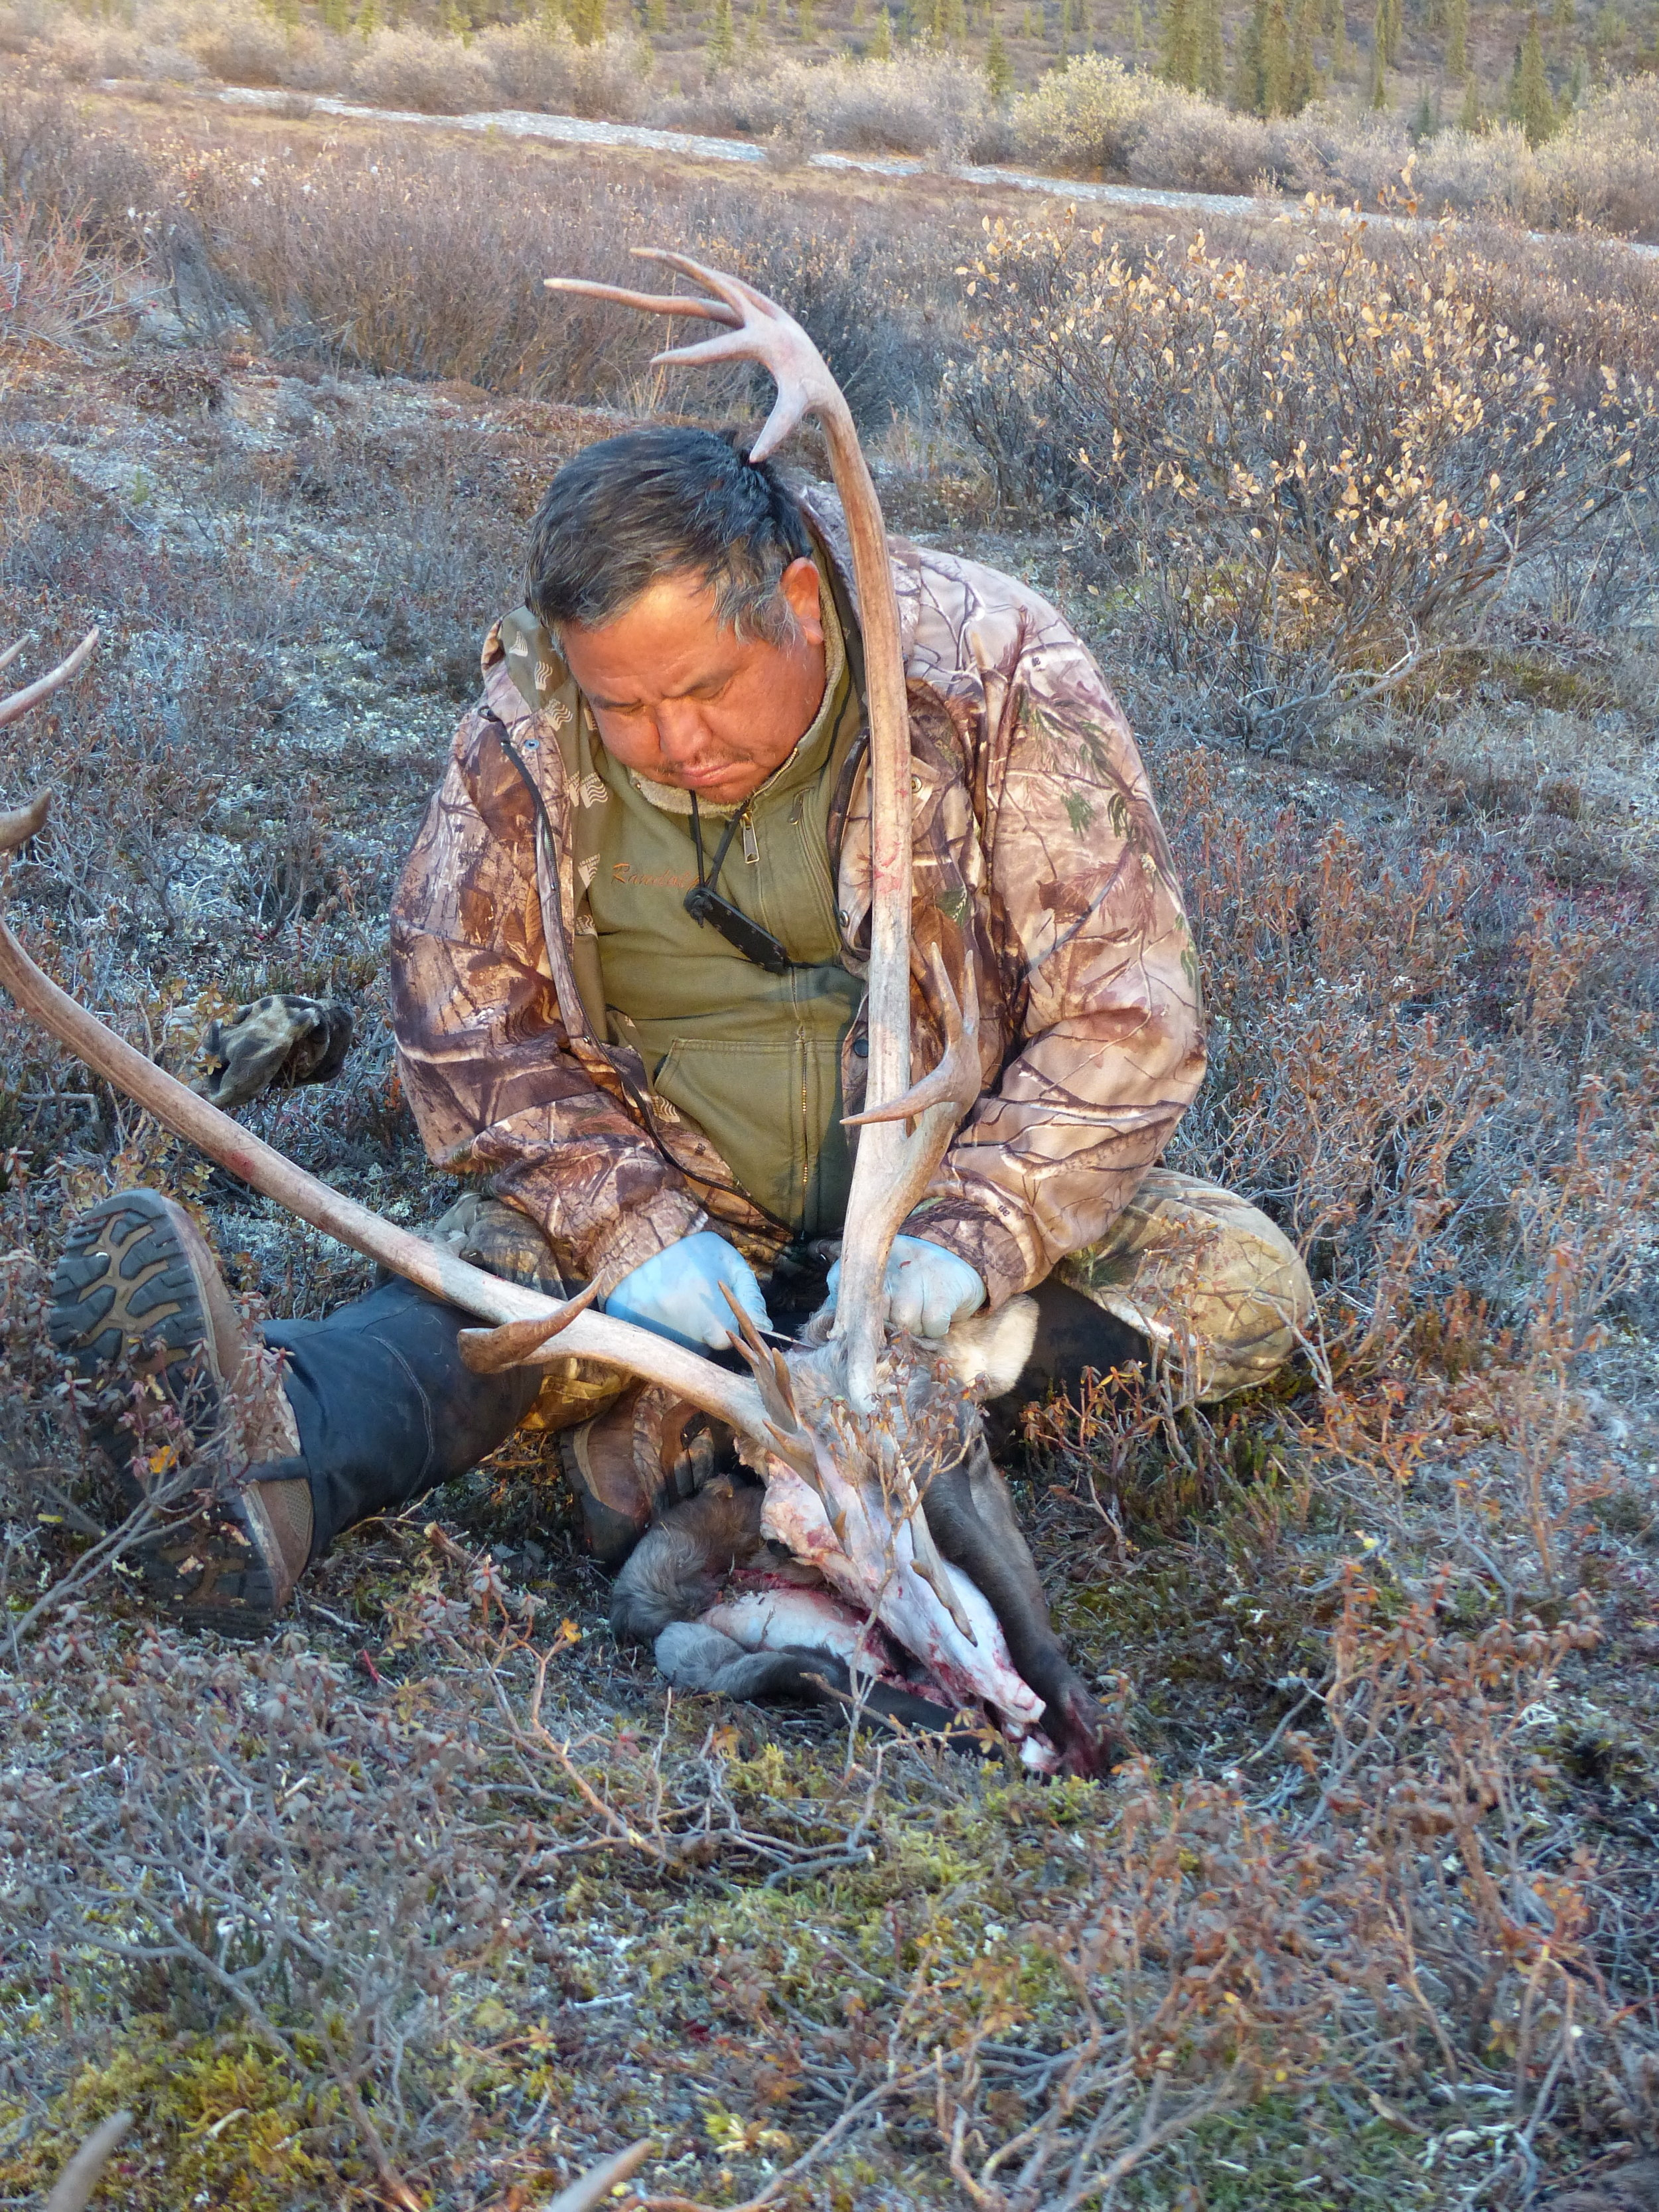 Randy cleans his caribou skull